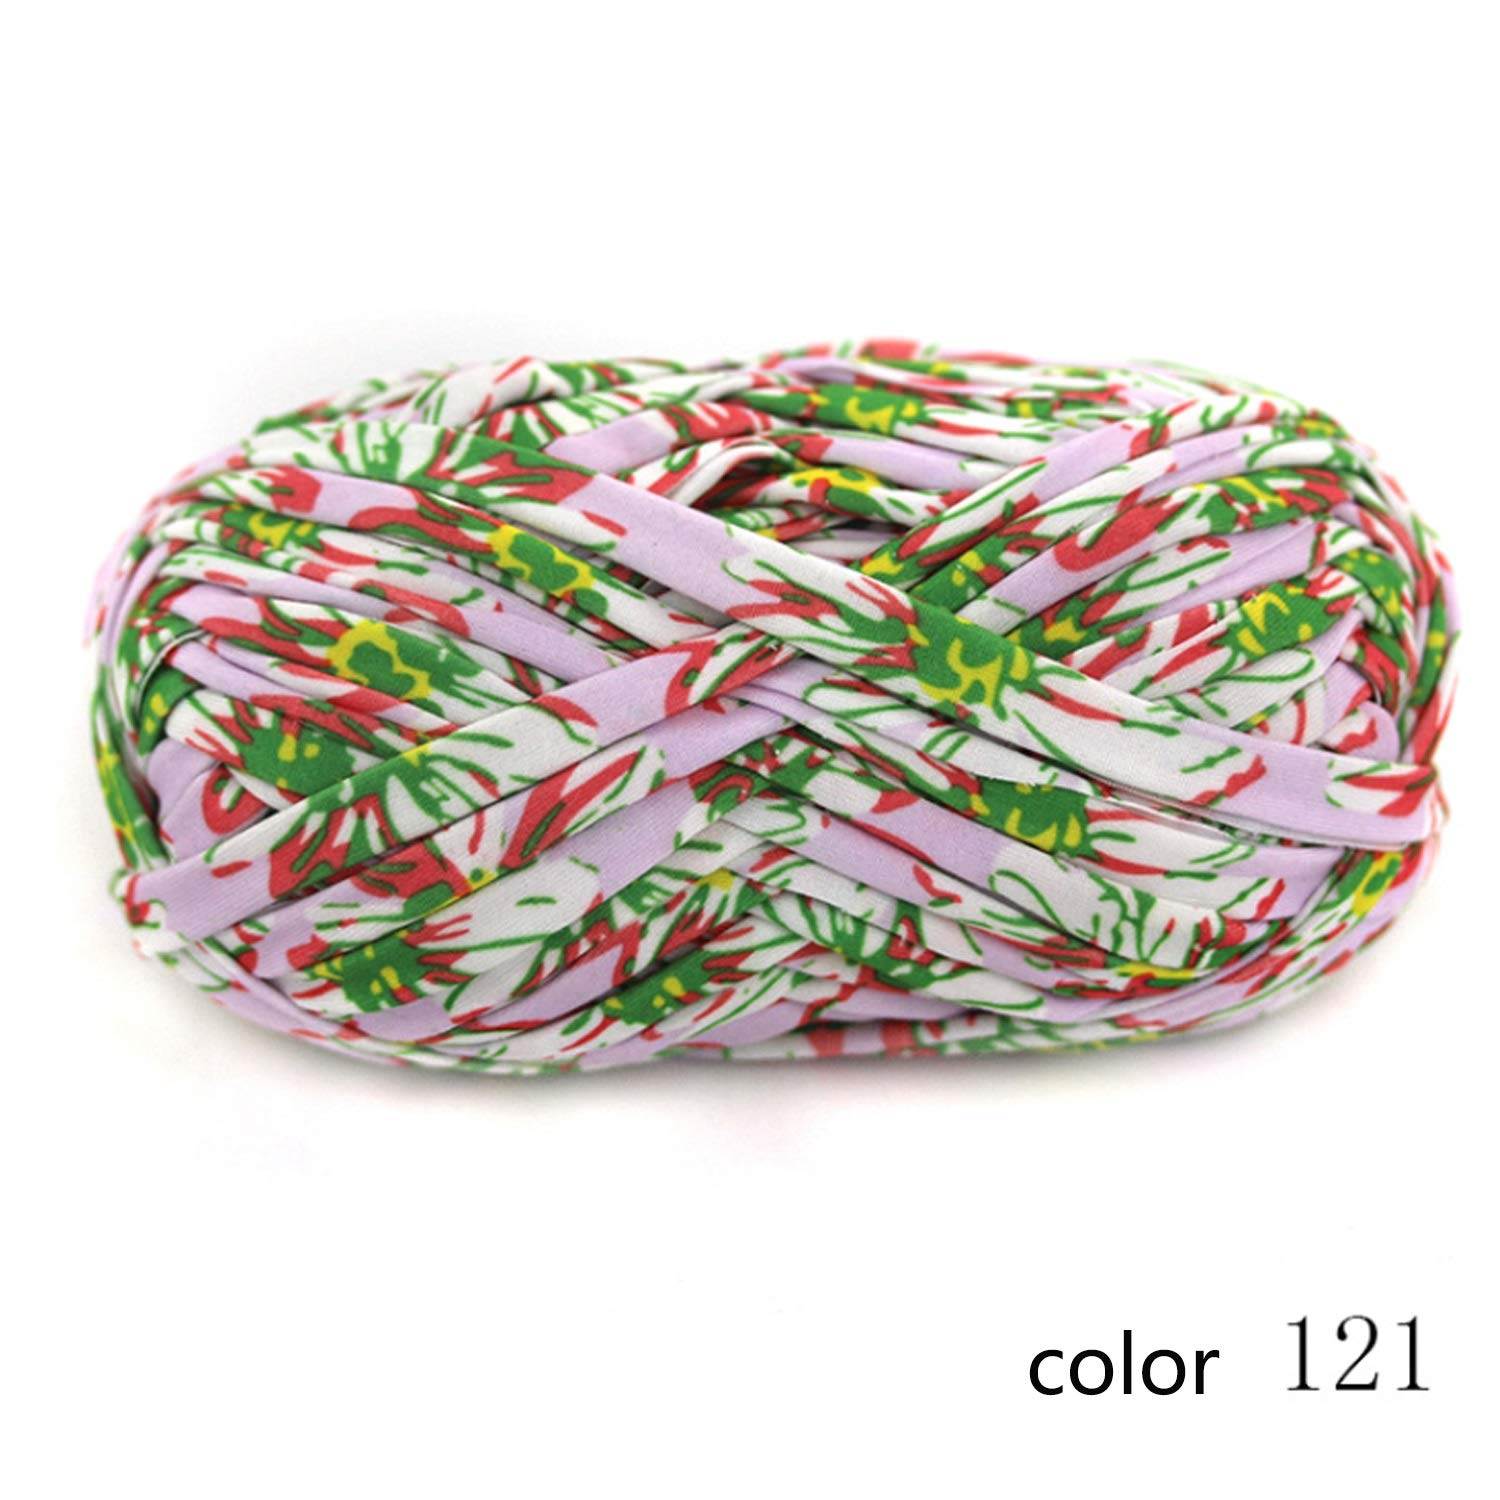 Col 121 10 balls Yarn knitting yarn Flower print cloth flower cloth hand crochet line bag carpet line 1   0.3 NM 1 ball about 100 g 10 multicolor selection possible ( color   Col 135 , UnitCount   20 balls )